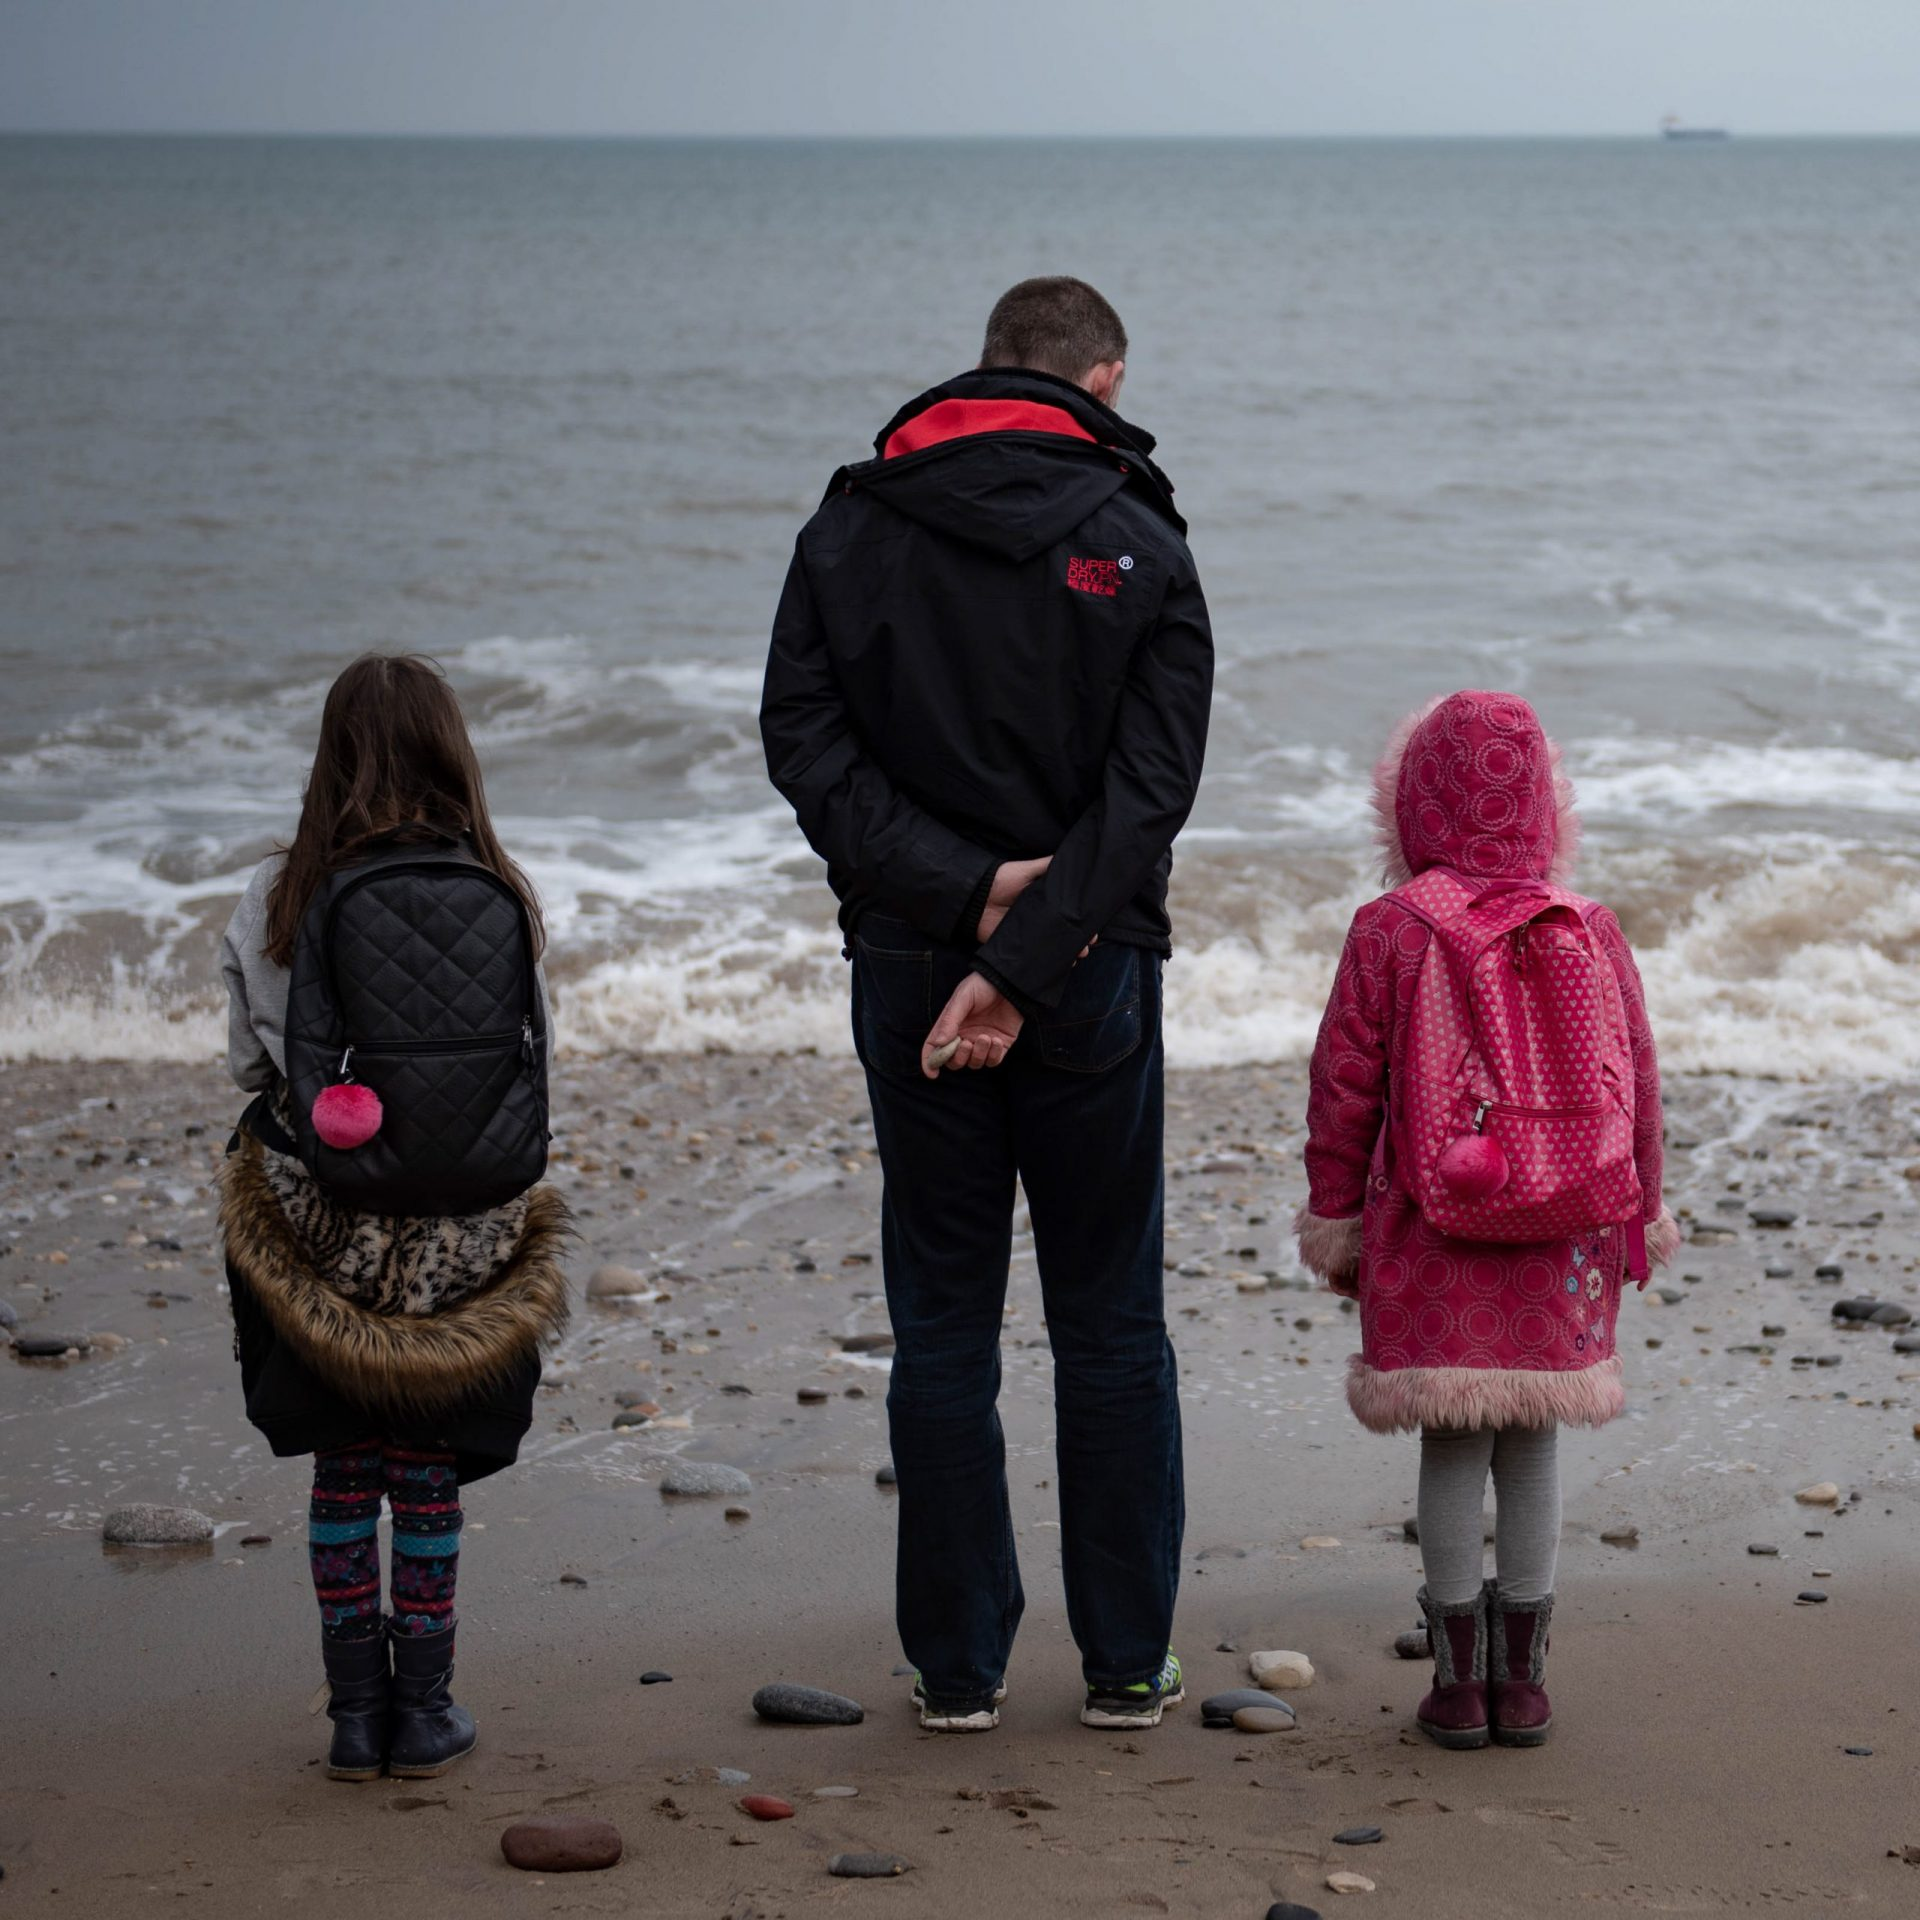 father and two child standing at the edge of the sea in winter